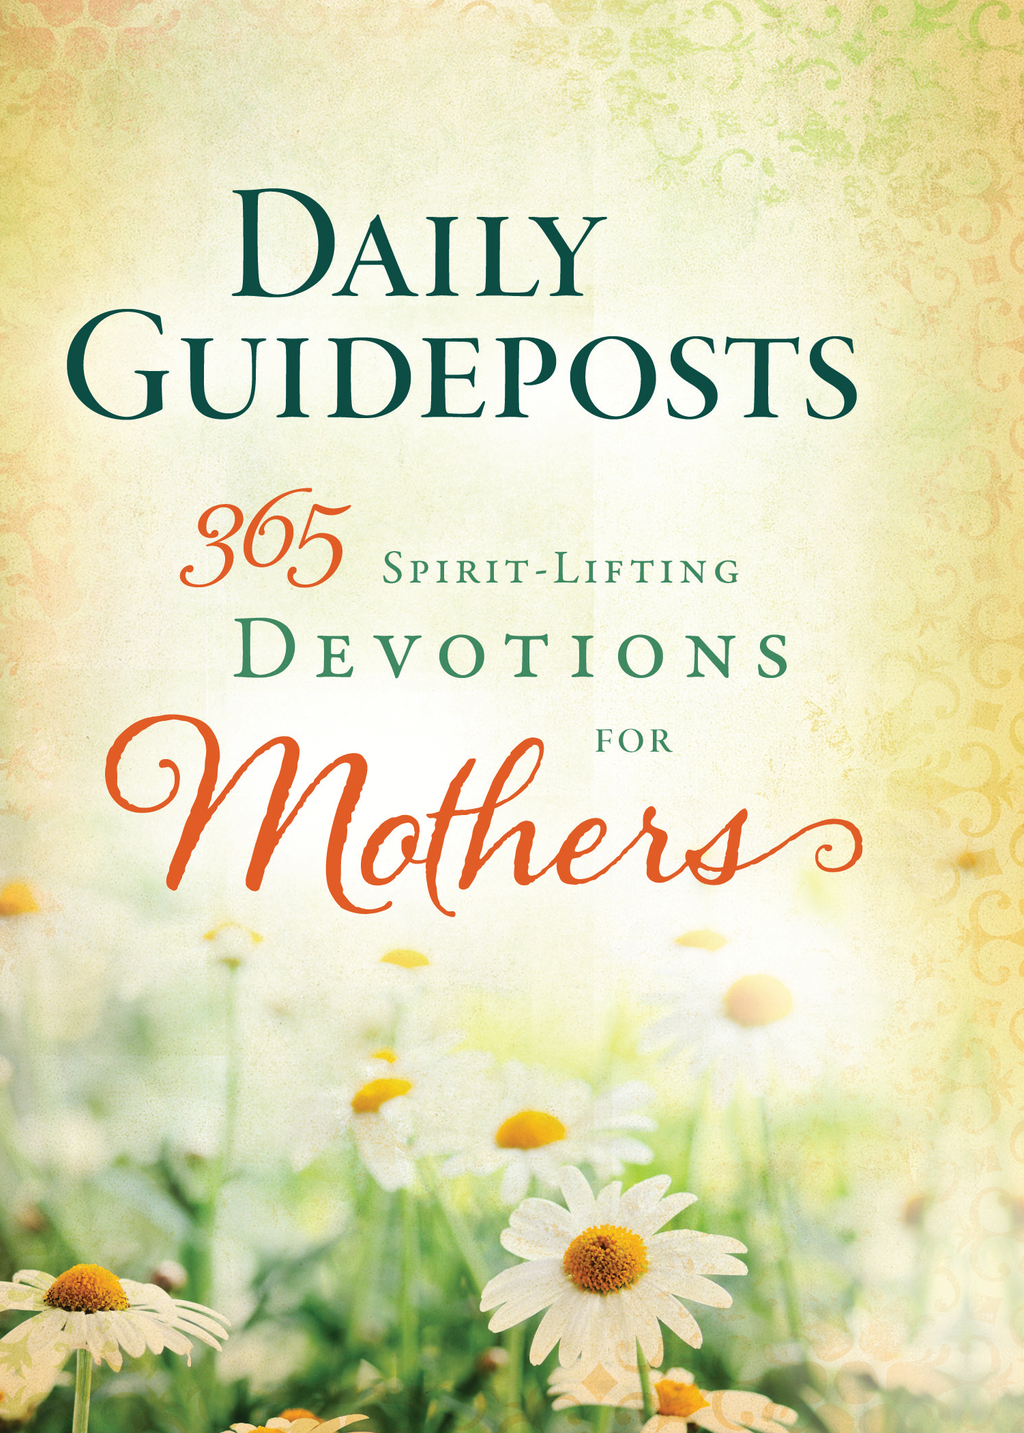 Daily Guideposts 365 Spirit-Lifting Devotions of Mothers By: Guideposts Editors